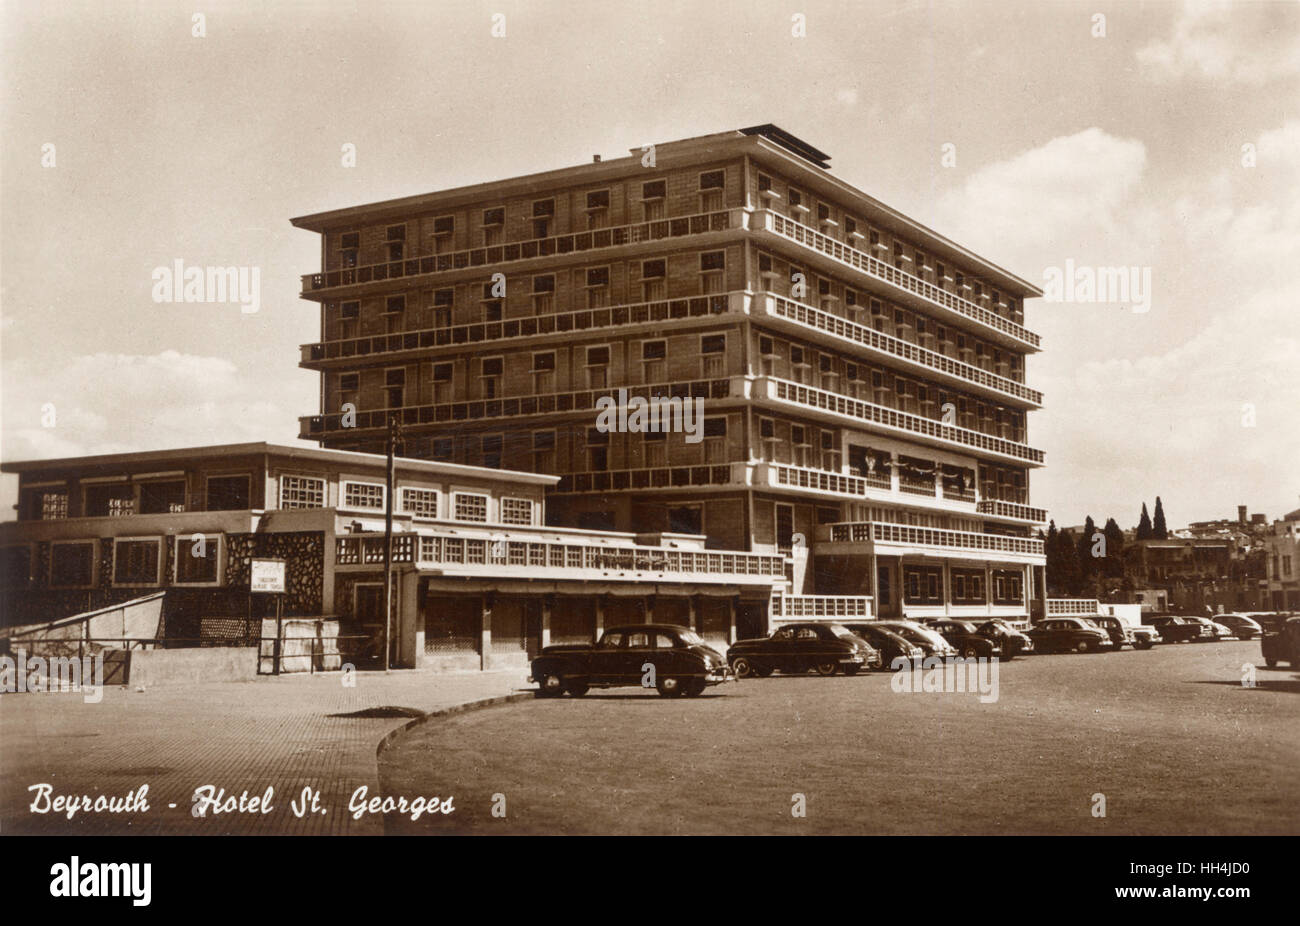 Hotel St. Georges in Beirut (Beyrouth), Lebanon, was built in the late 1920's and hosted many famous guests - Stock Image